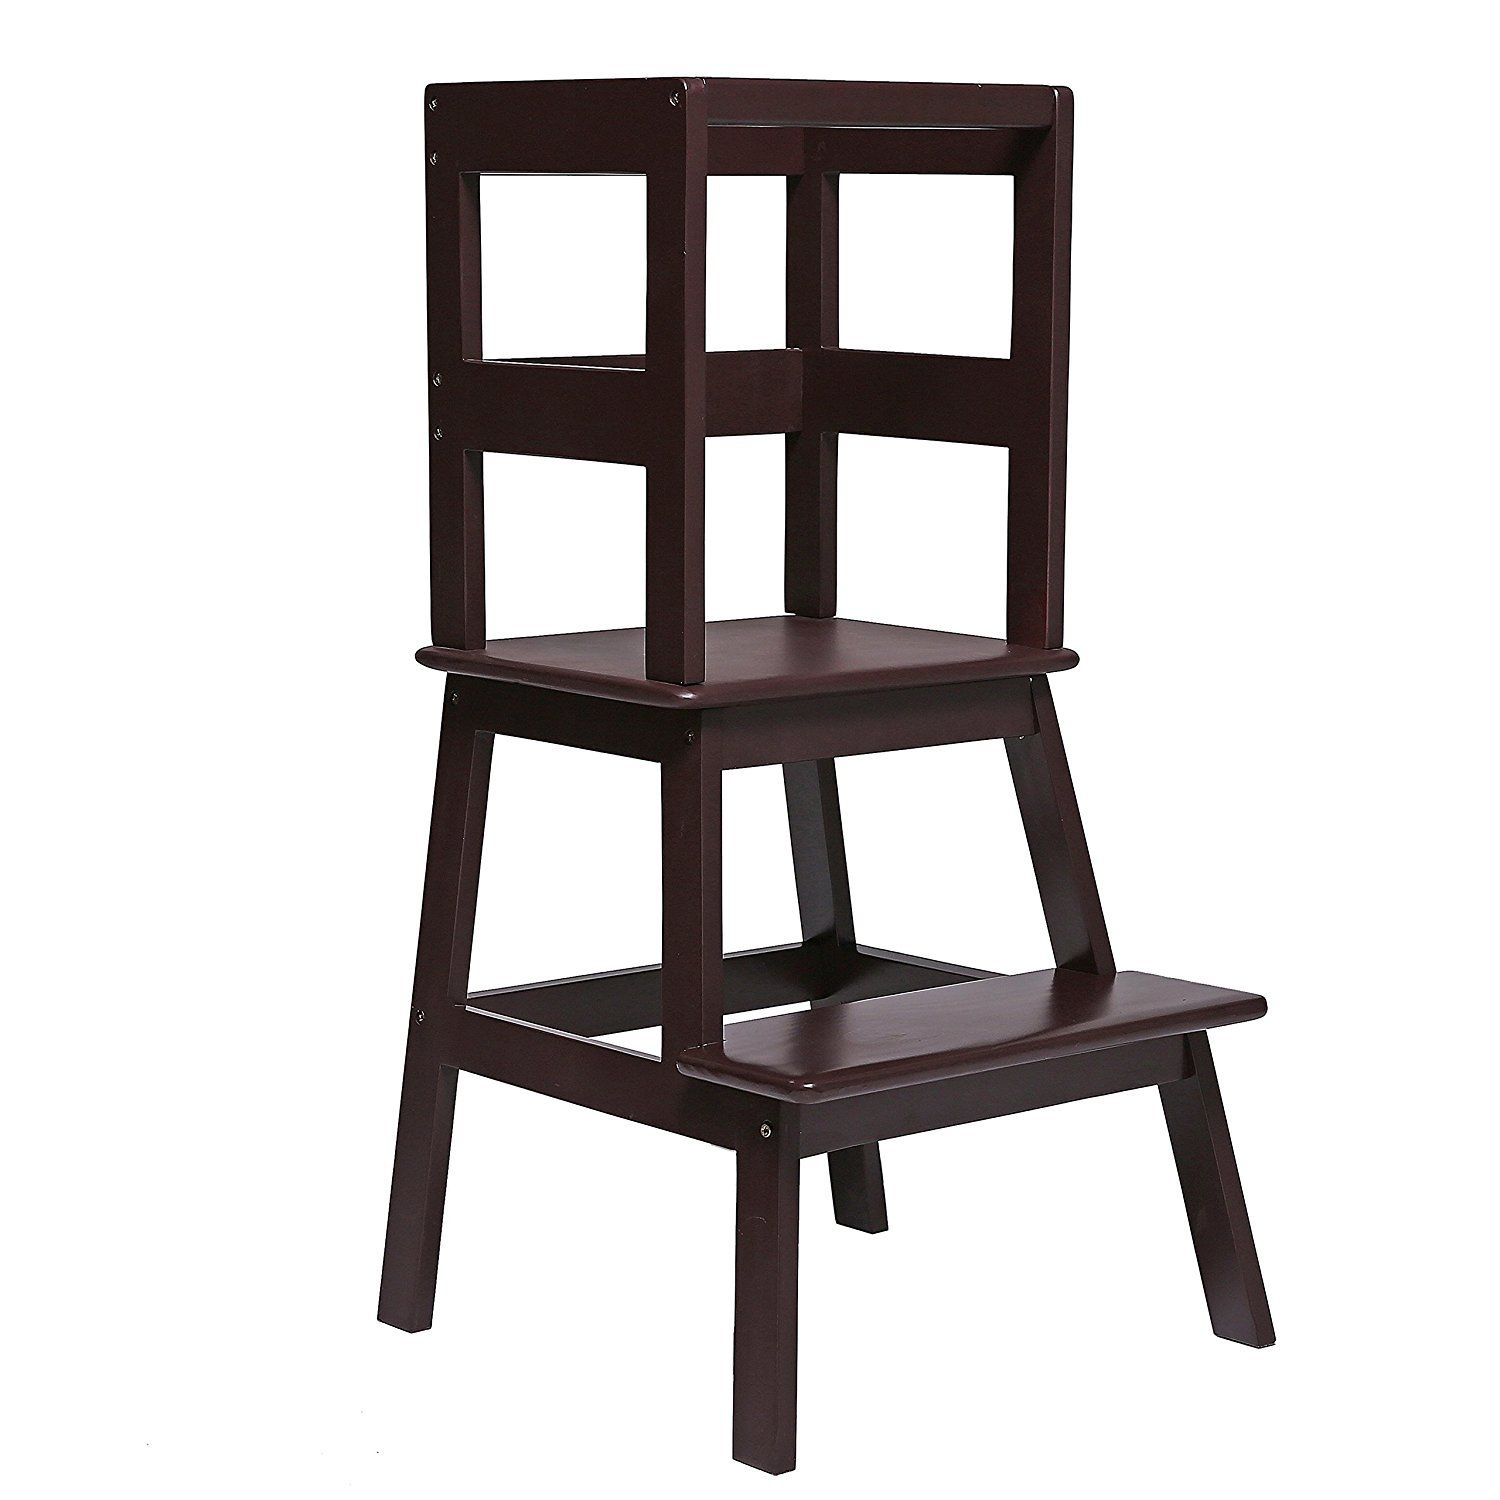 unicoo kids learning tower learning stool kitchen step stool little helper tower. Black Bedroom Furniture Sets. Home Design Ideas